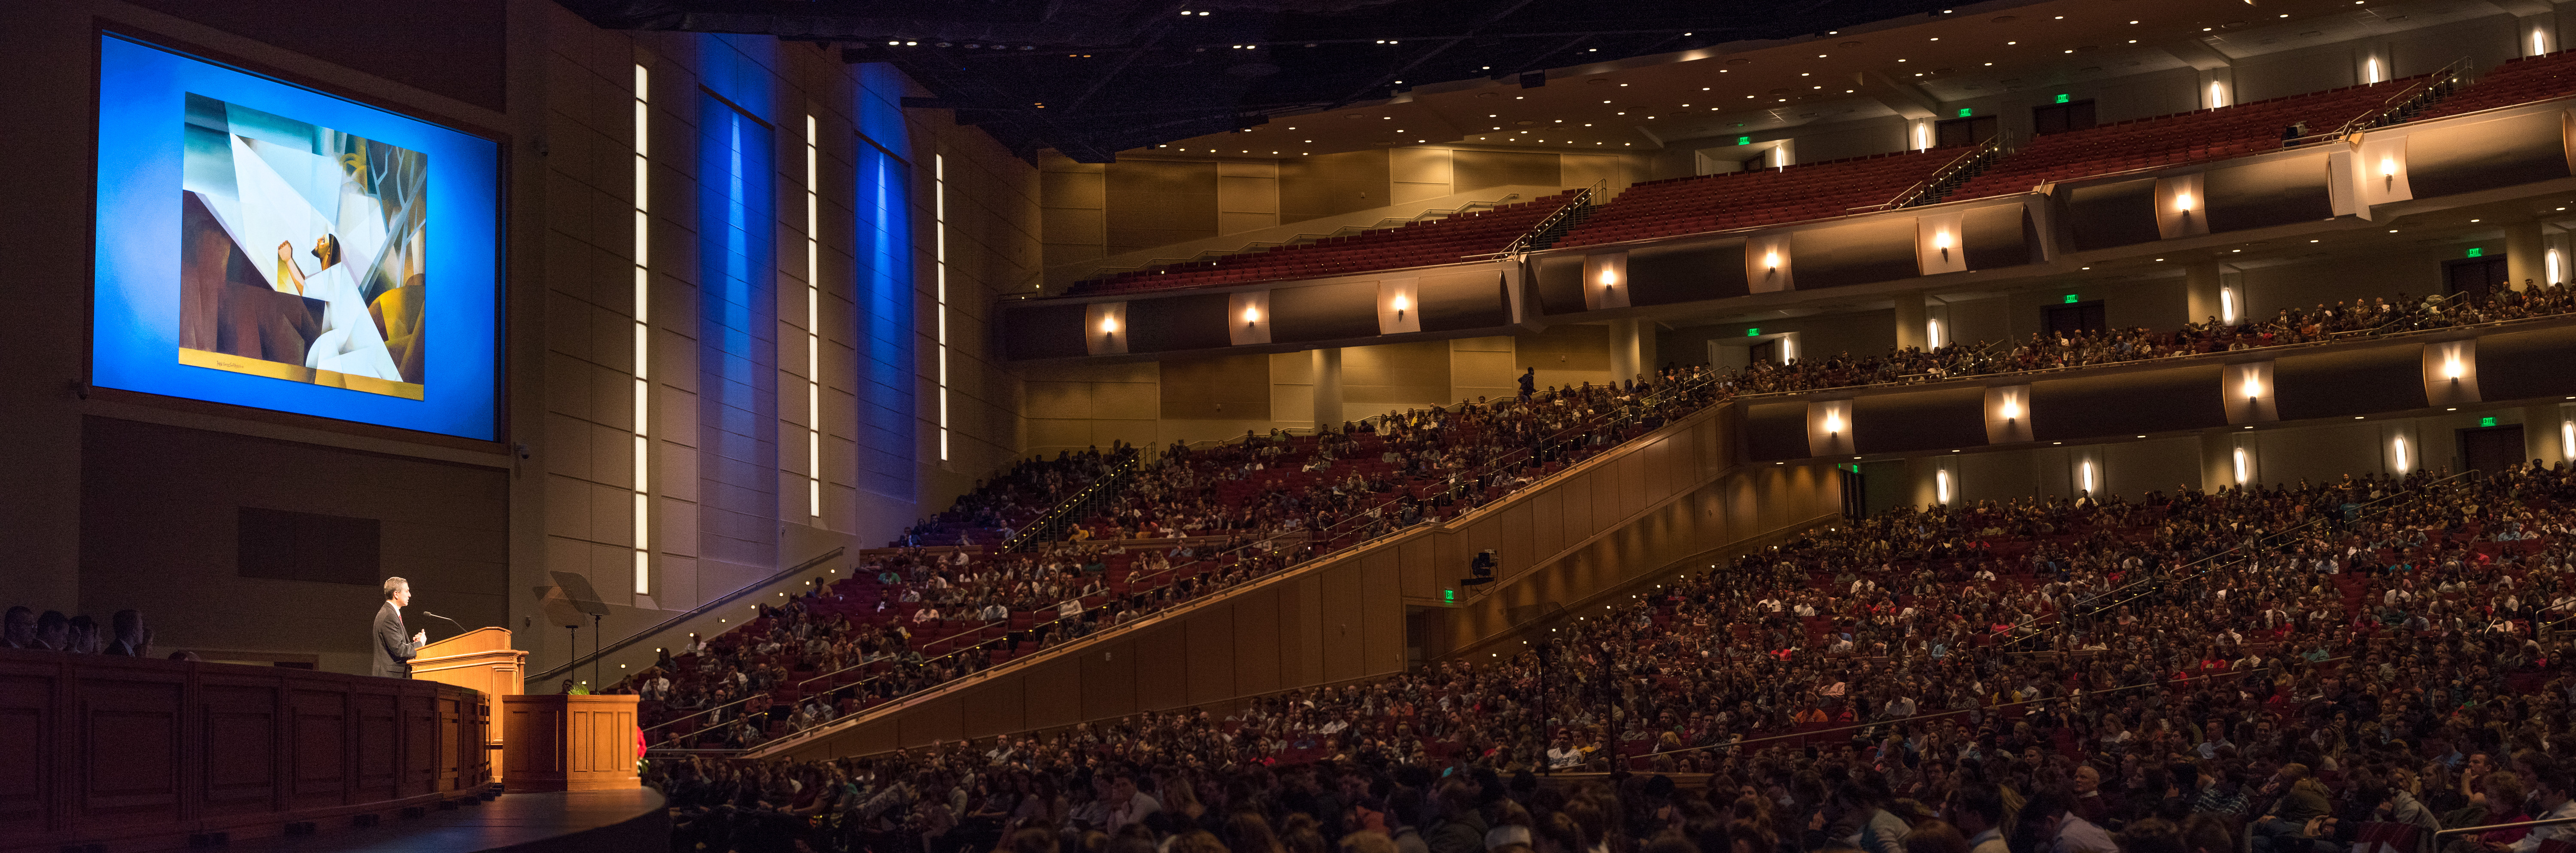 Elder Joaquin E. Costa, a General Authority Seventy of the Church, and his wife, Sister Renee Costa, speak to the students of BYU–Idaho at a devotional on Feb. 26 about the things they wish they had known while in college.